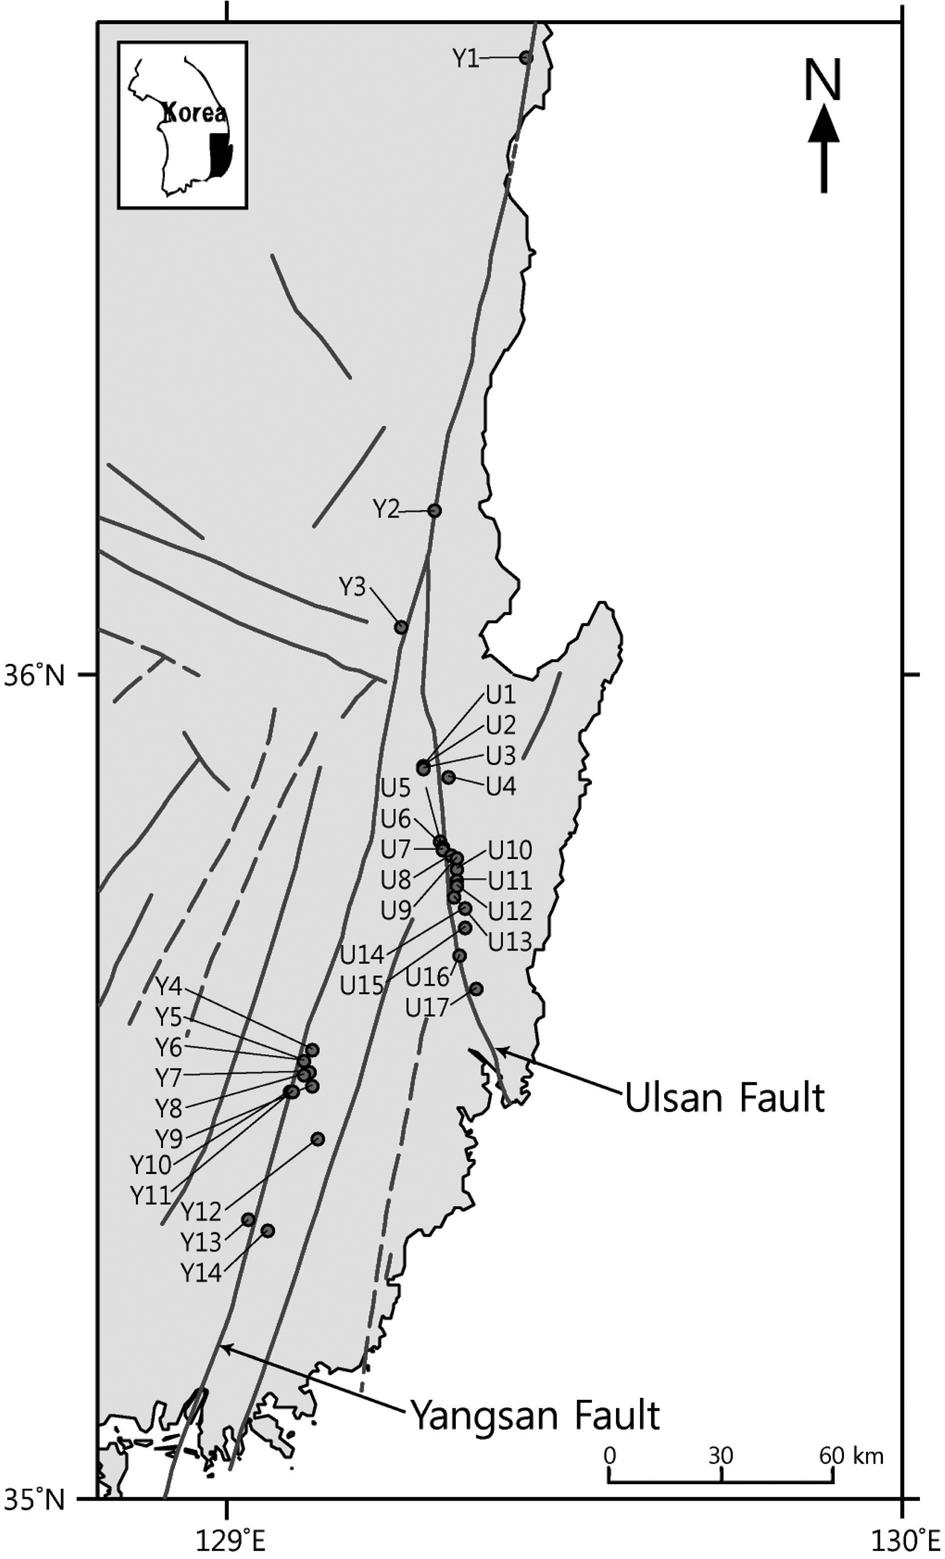 ûw û š ³ sƒ 189 Fig. 1. Locations of Late Quaternary faults along the Yangsan and Ulsan fault zones.